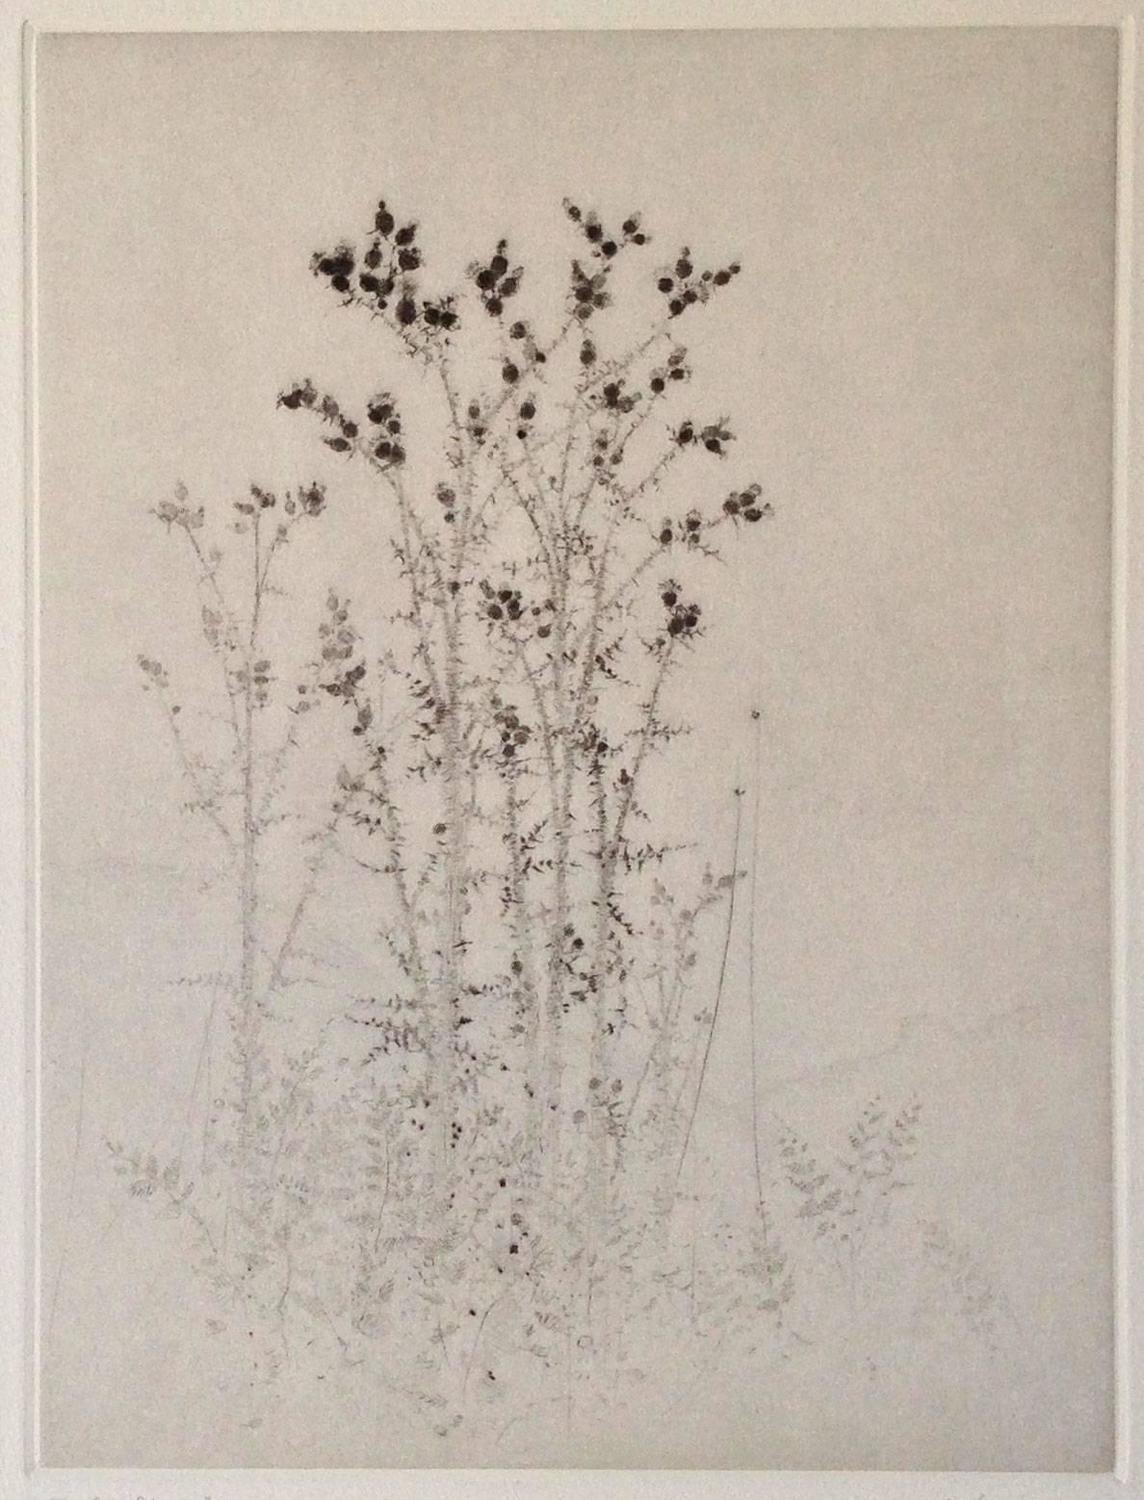 Jean Michel Mathieux-Marie - Le Coupole, Print For Sale at 1stdibs